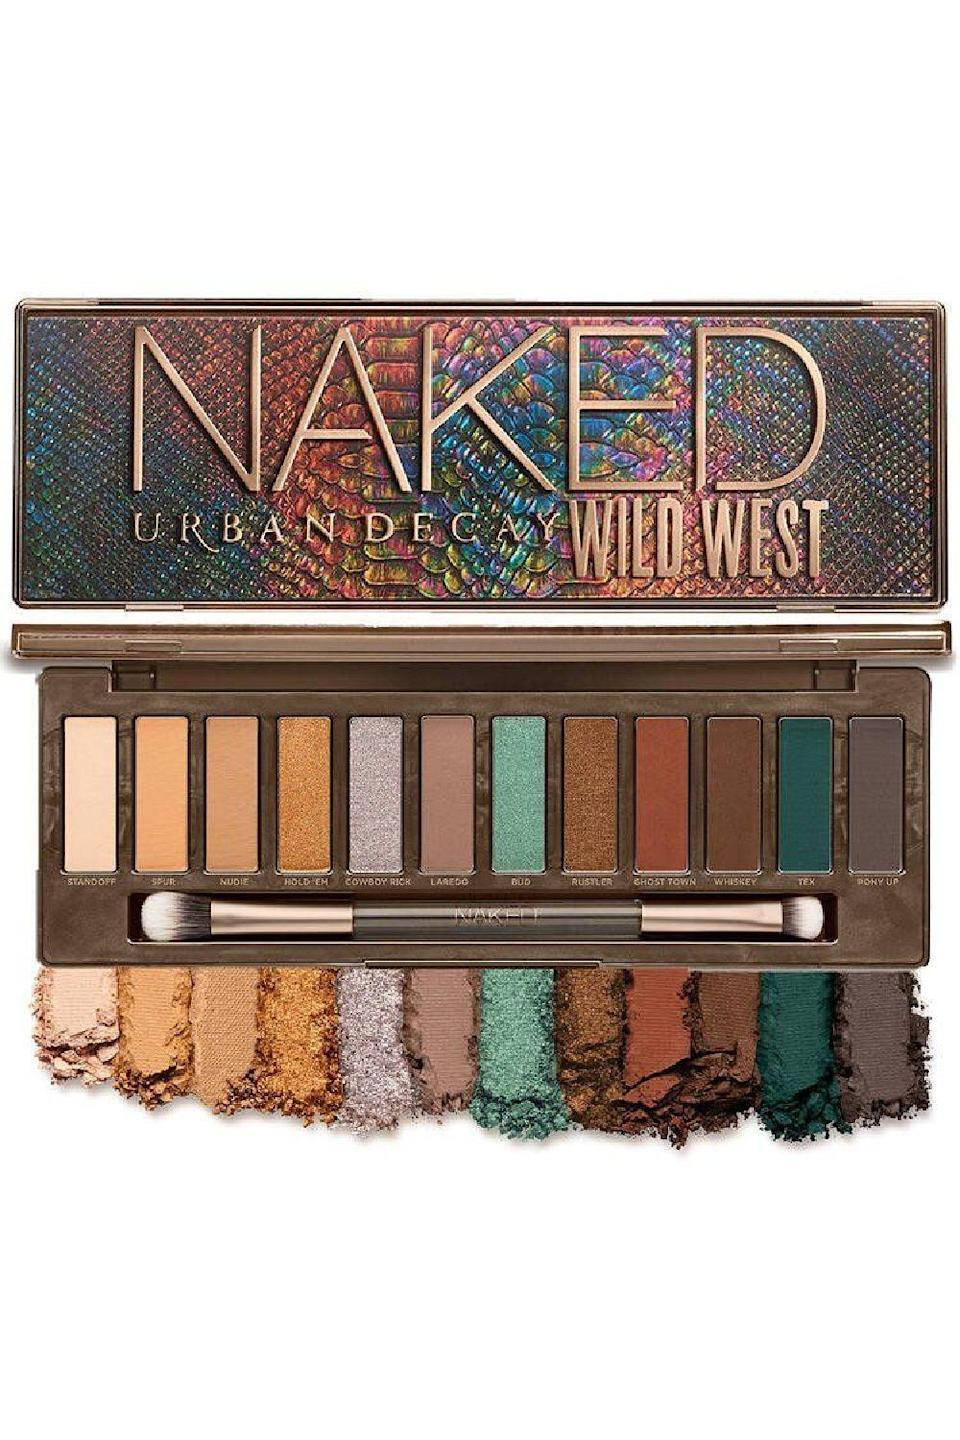 """<p>urbandecay.com</p><p><strong>$49.00</strong></p><p><a href=""""https://go.redirectingat.com?id=74968X1596630&url=https%3A%2F%2Fwww.urbandecay.com%2Furban-decay-cosmetics%2Fnaked-wild-west-eyeshadow-palette%2Fud1054.html&sref=https%3A%2F%2Fwww.cosmopolitan.com%2Fstyle-beauty%2Fbeauty%2Fg36596599%2Fbest-eyeshadow-palettes%2F"""" rel=""""nofollow noopener"""" target=""""_blank"""" data-ylk=""""slk:Shop Now"""" class=""""link rapid-noclick-resp"""">Shop Now</a></p><p>Although you'll still find some cooler shades on the right end of this palette, this assortment of desert-inspired colors, like turquoise, terracotta, and copper, is a warm-toned dreamland. You'll find all the matte, metallic, and shimmer finishes you know and love from the brand, along with<strong> easy-to-wear transition shades</strong><strong> that make the iconic Naked palettes famous.</strong> Although any eye color can wear any eye makeup, these <a href=""""https://www.cosmopolitan.com/style-beauty/beauty/g30717185/best-eyeshadow-for-blue-eyes/"""" rel=""""nofollow noopener"""" target=""""_blank"""" data-ylk=""""slk:eyeshadows on blue eyes"""" class=""""link rapid-noclick-resp"""">eyeshadows on blue eyes</a> would look particularly amazing, IMO.</p>"""